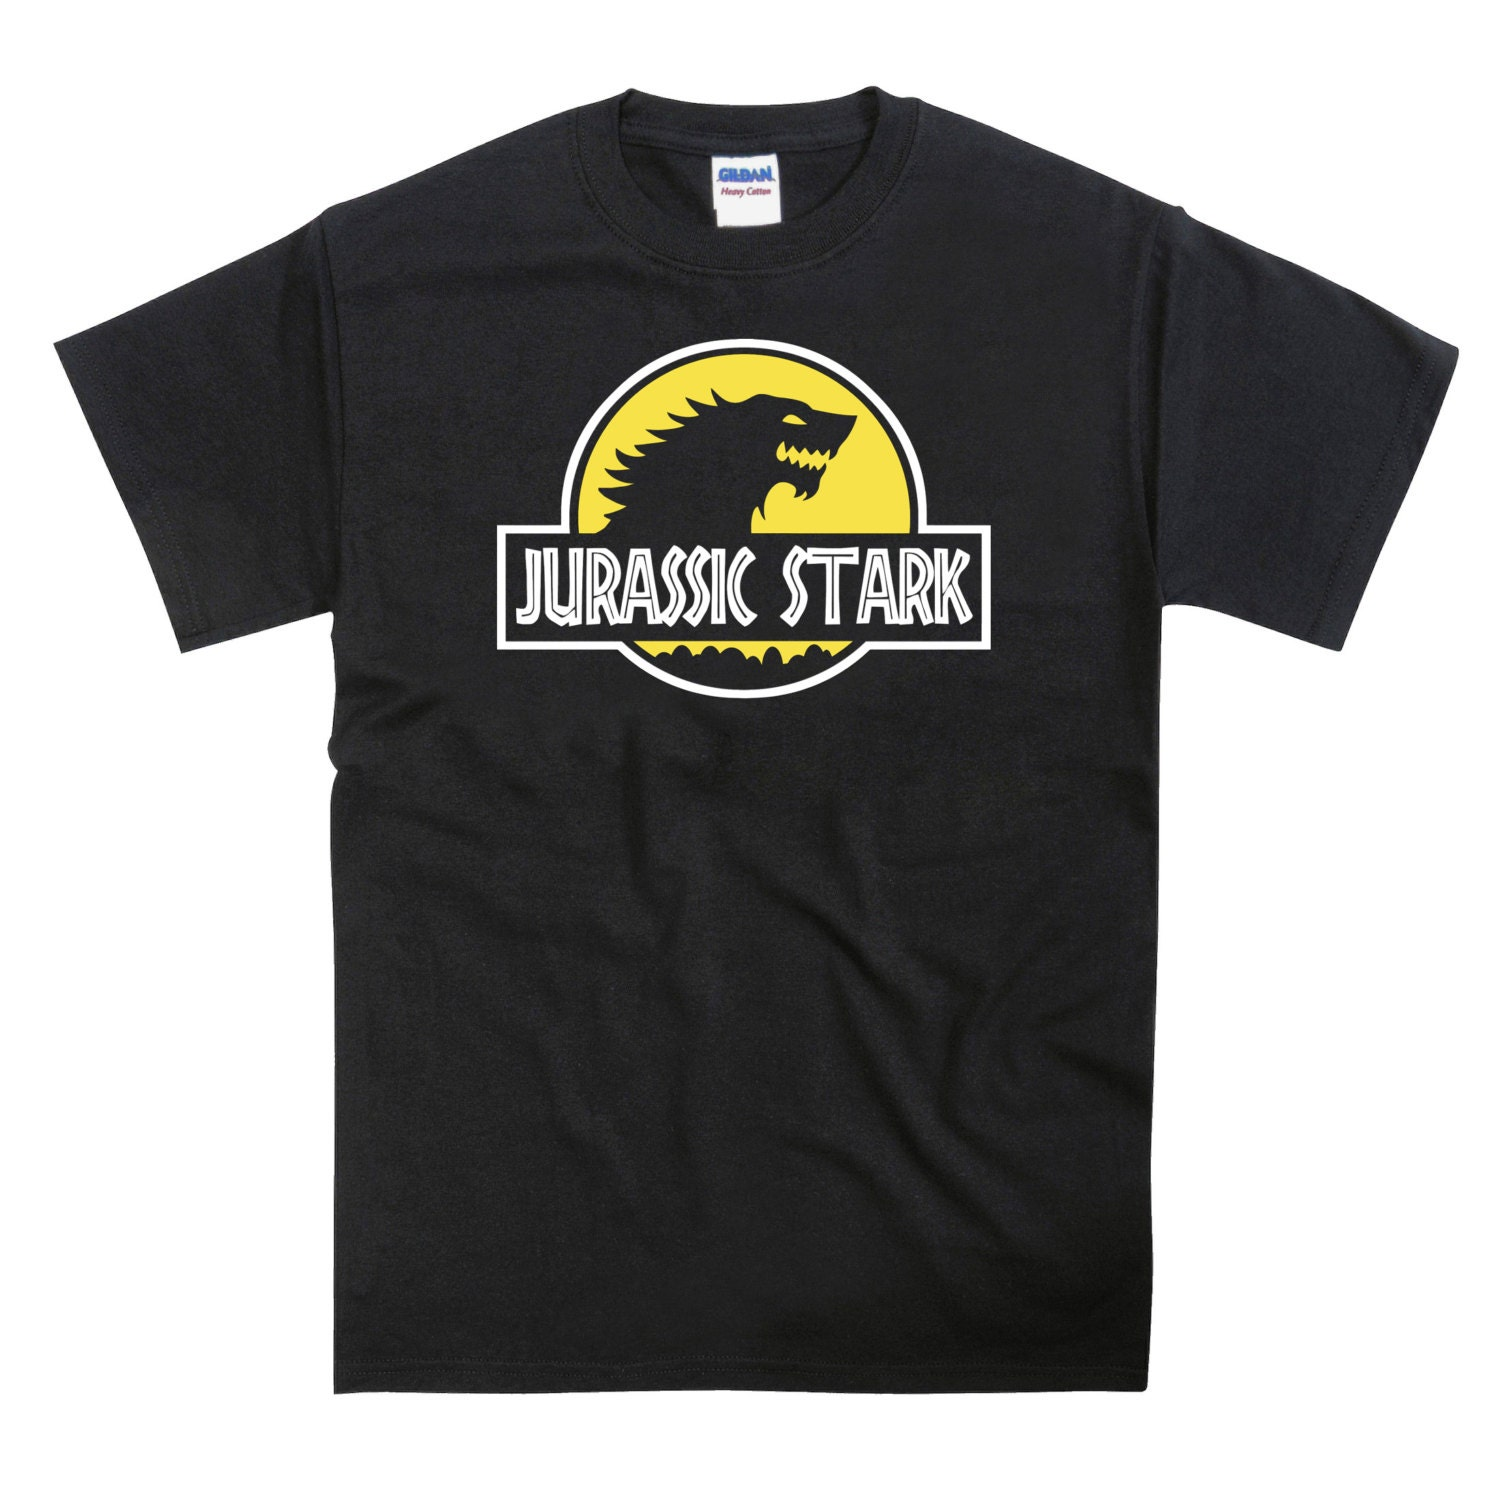 Jurassic Park GOT Game Thrones Stark Parody Tshirt (YELLOW VER)